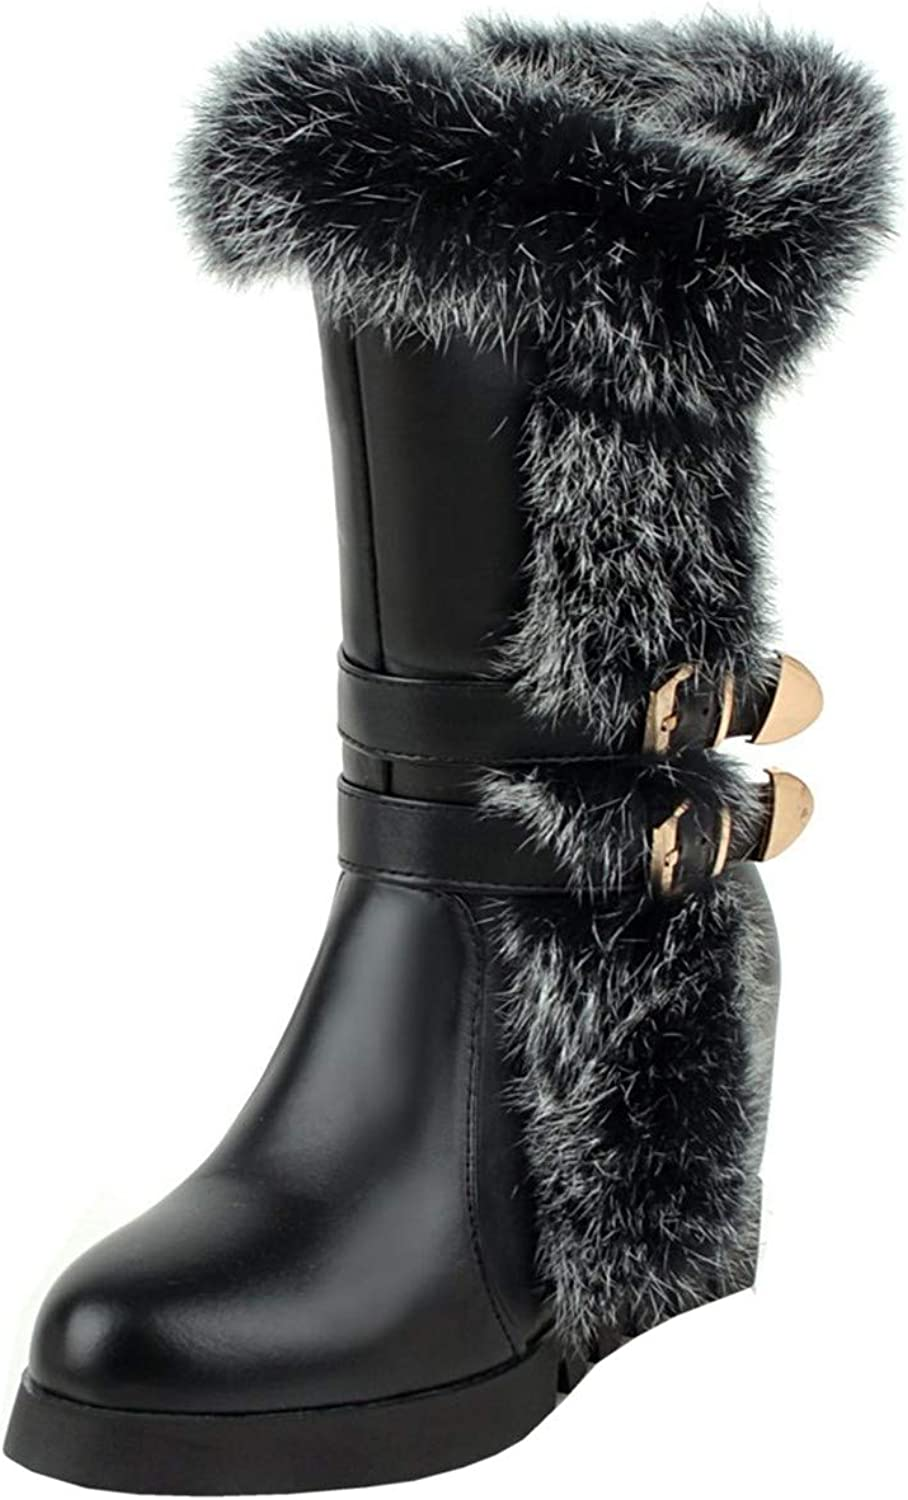 Rongzhi Womens Mid-Calf Boot Warm Fur Wedge Stap Buckle Round Toe Zip Snow Boots Black